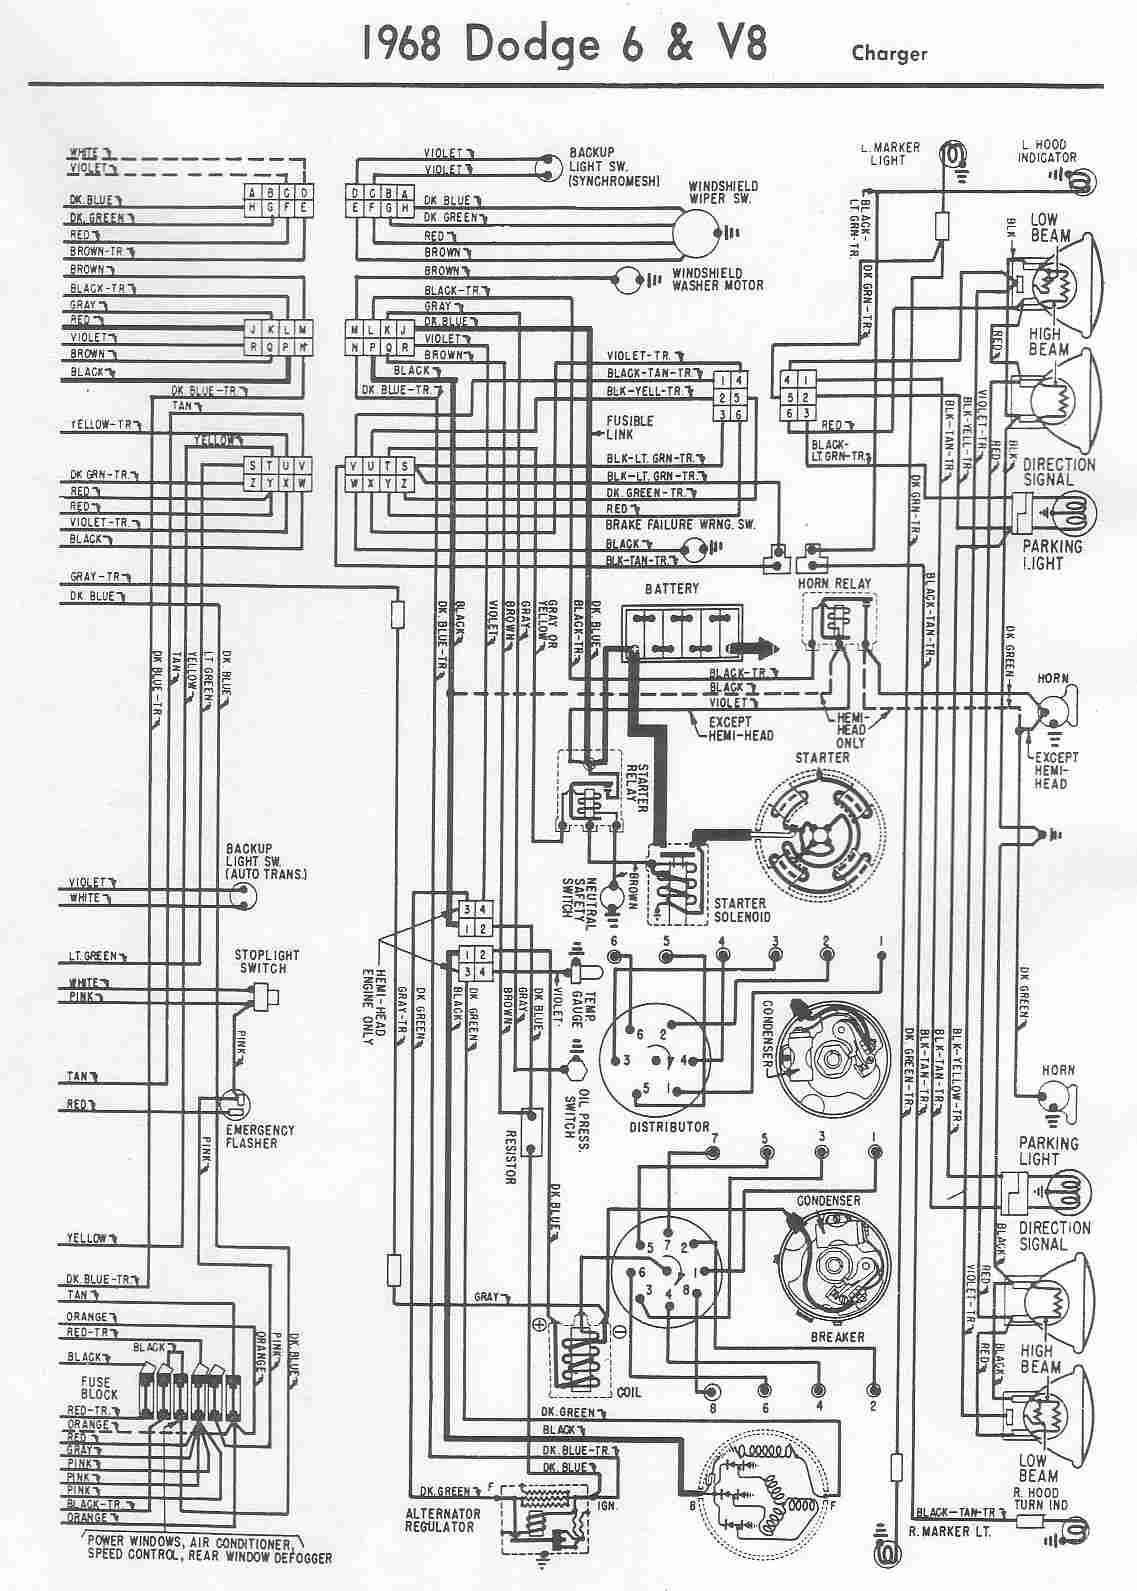 charger electrical wiring diagram of 1968 dodge 6 and v8?t=1508404771 dodge car manuals, wiring diagrams pdf & fault codes Multi Speed Blower Motor Wiring at virtualis.co